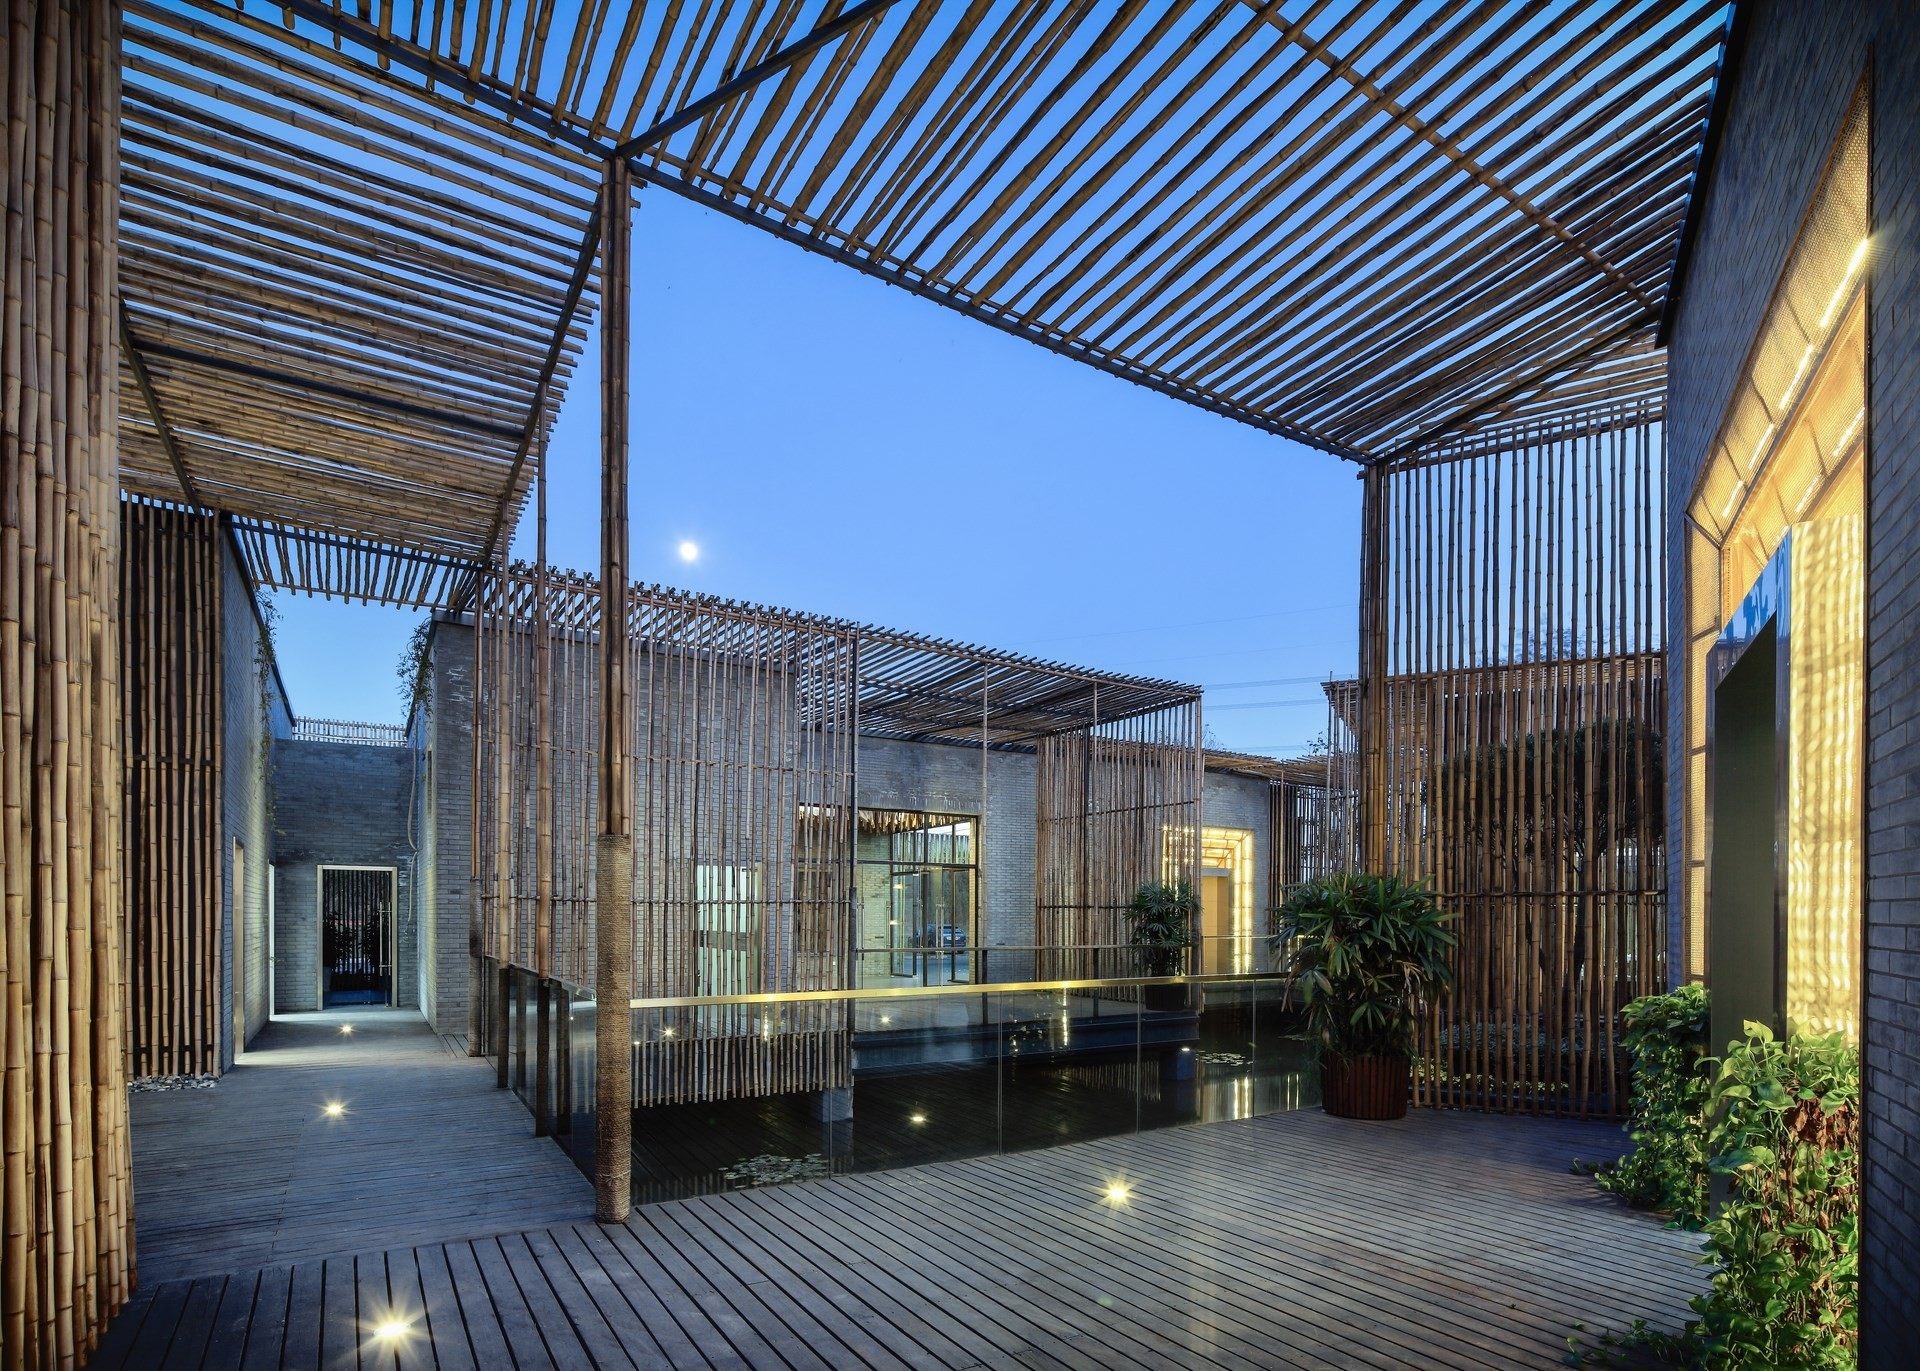 Bamboo Courtyard Teahouse Harmony World Consulting